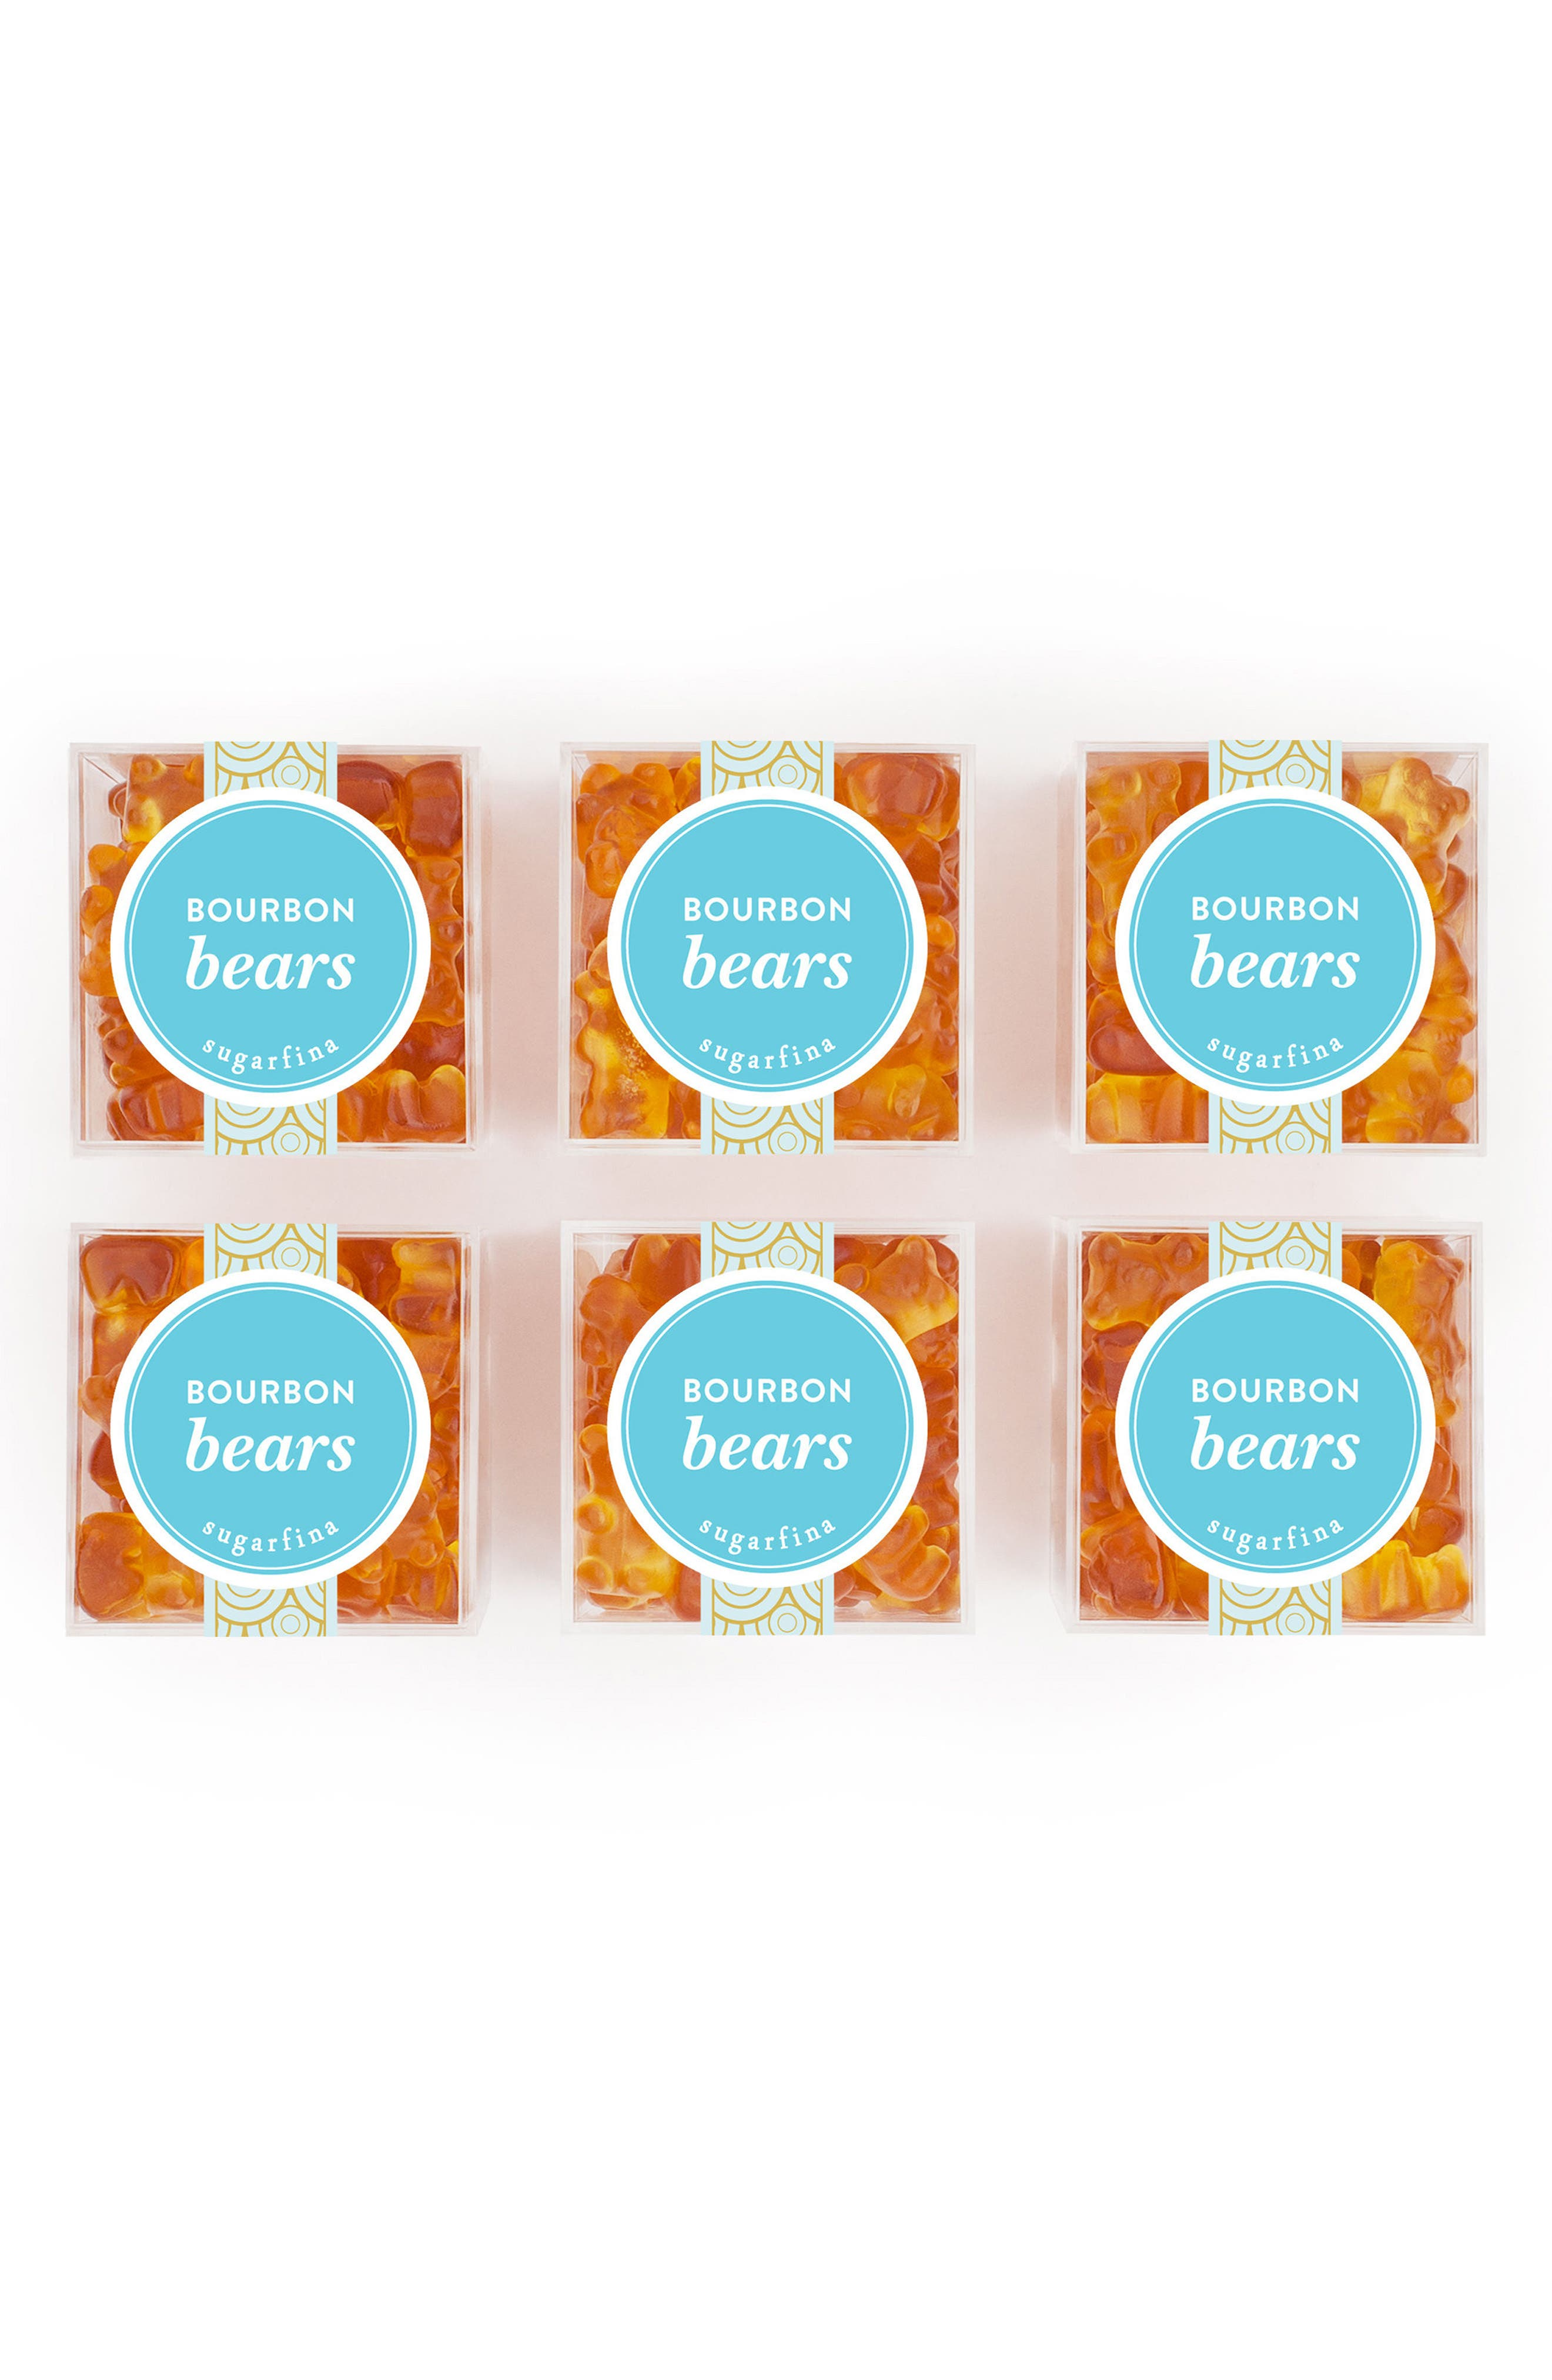 sugarfina Set of 6 Bourbon Bears Candy Cubes